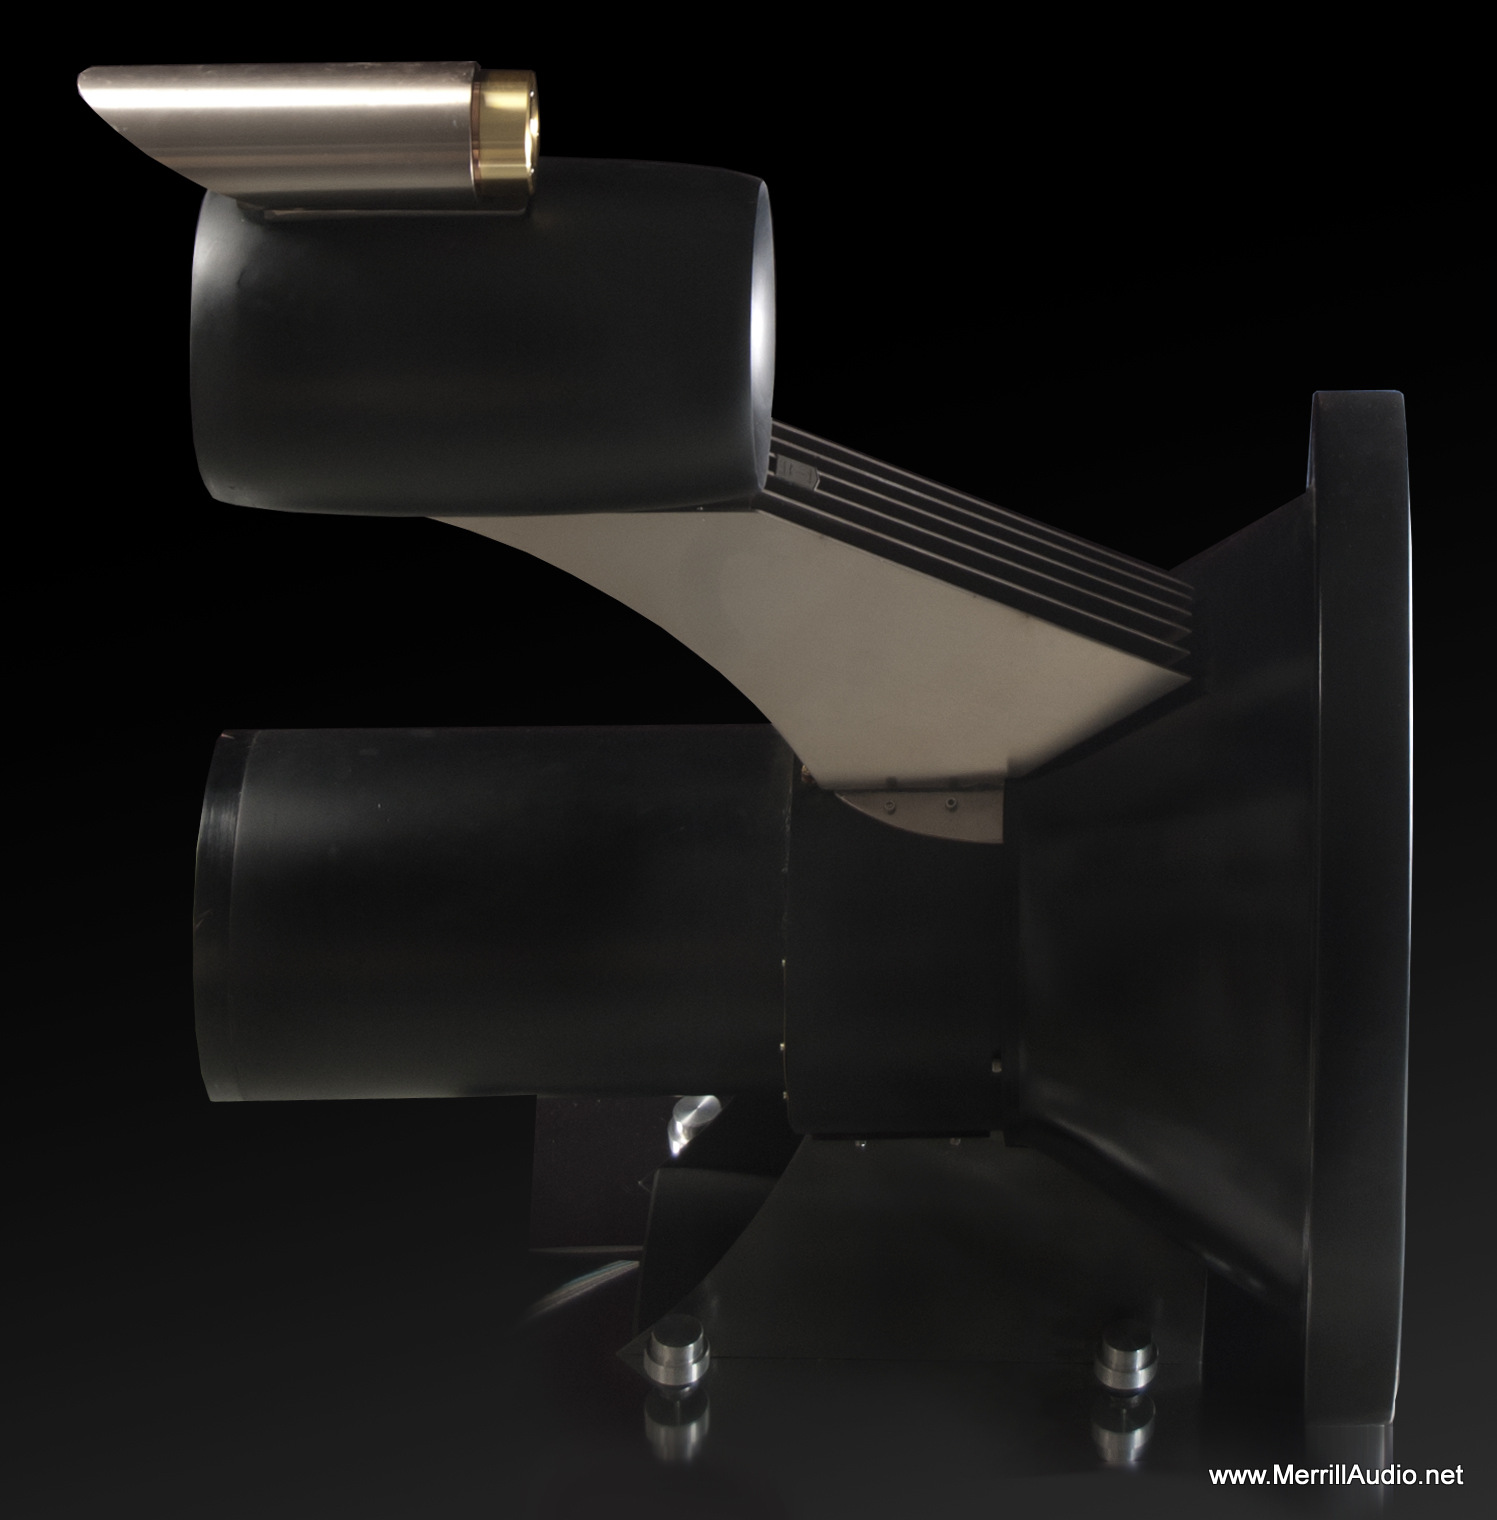 Stacatto Horn Speakers Side View